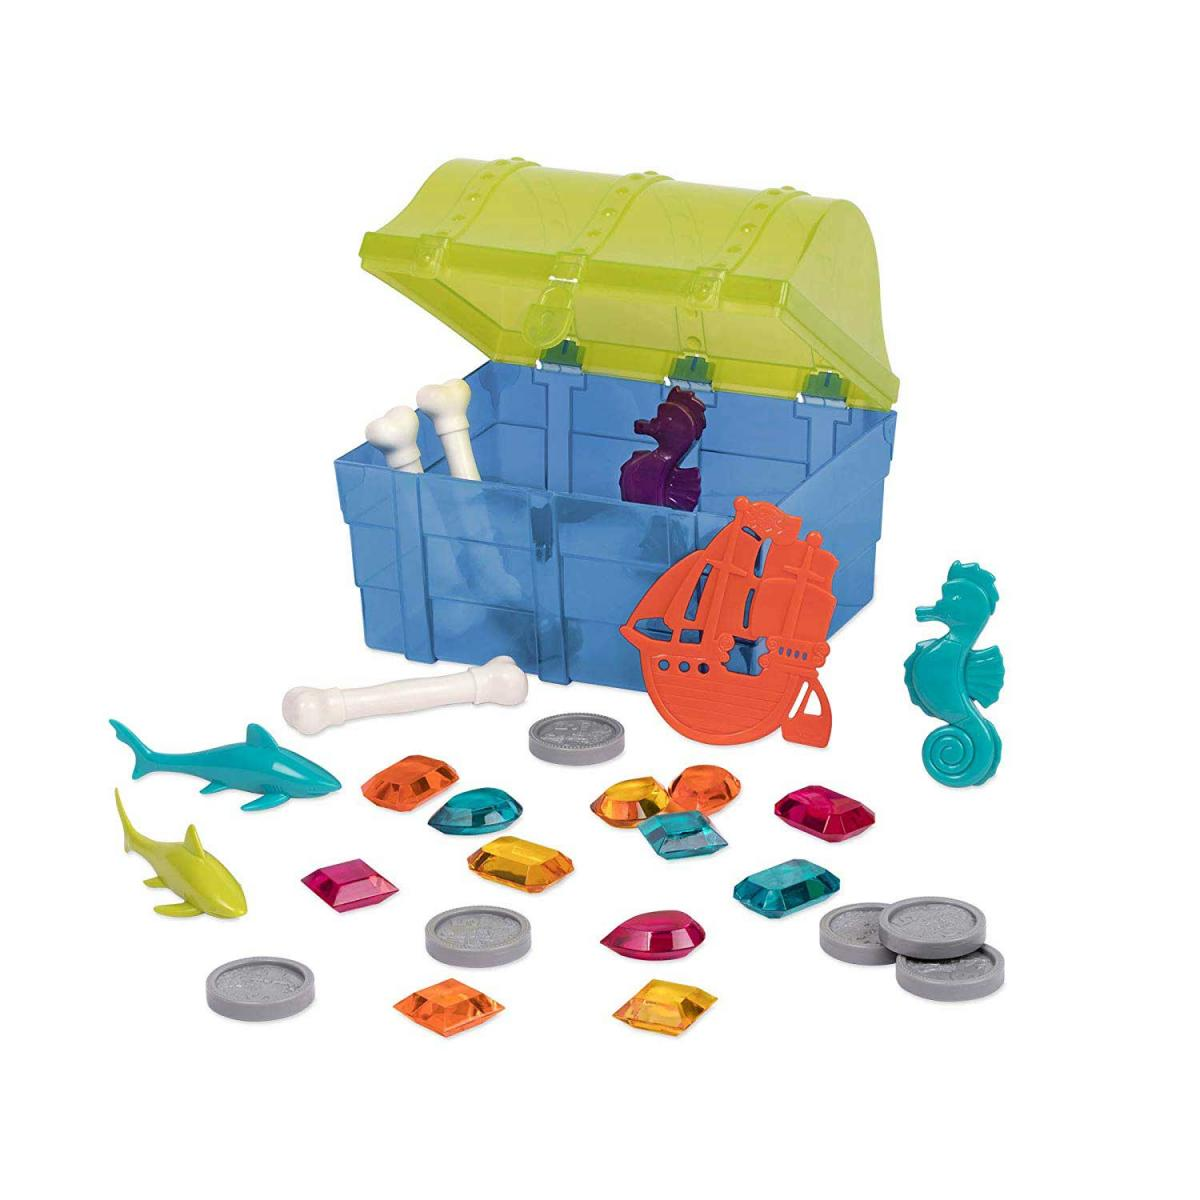 Pirate Diving Toy Set